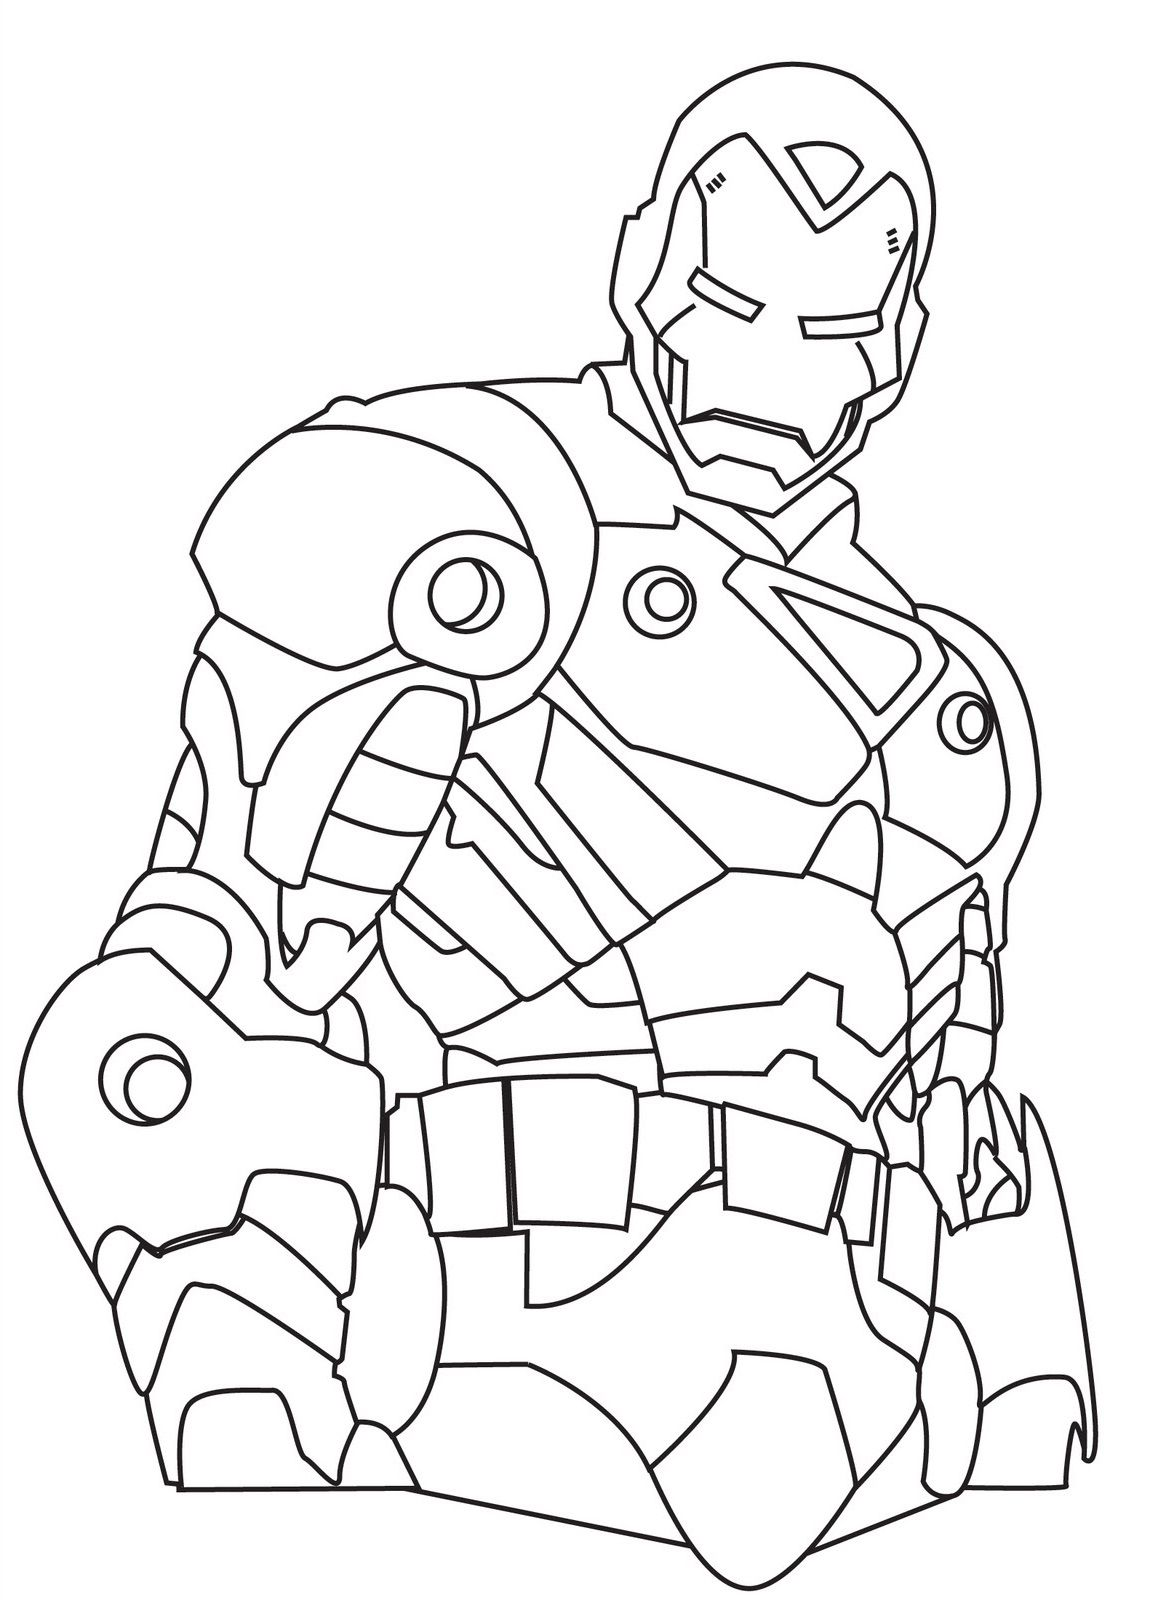 Iron Man Coloring Pages For Boys | Educative Printable | Fun